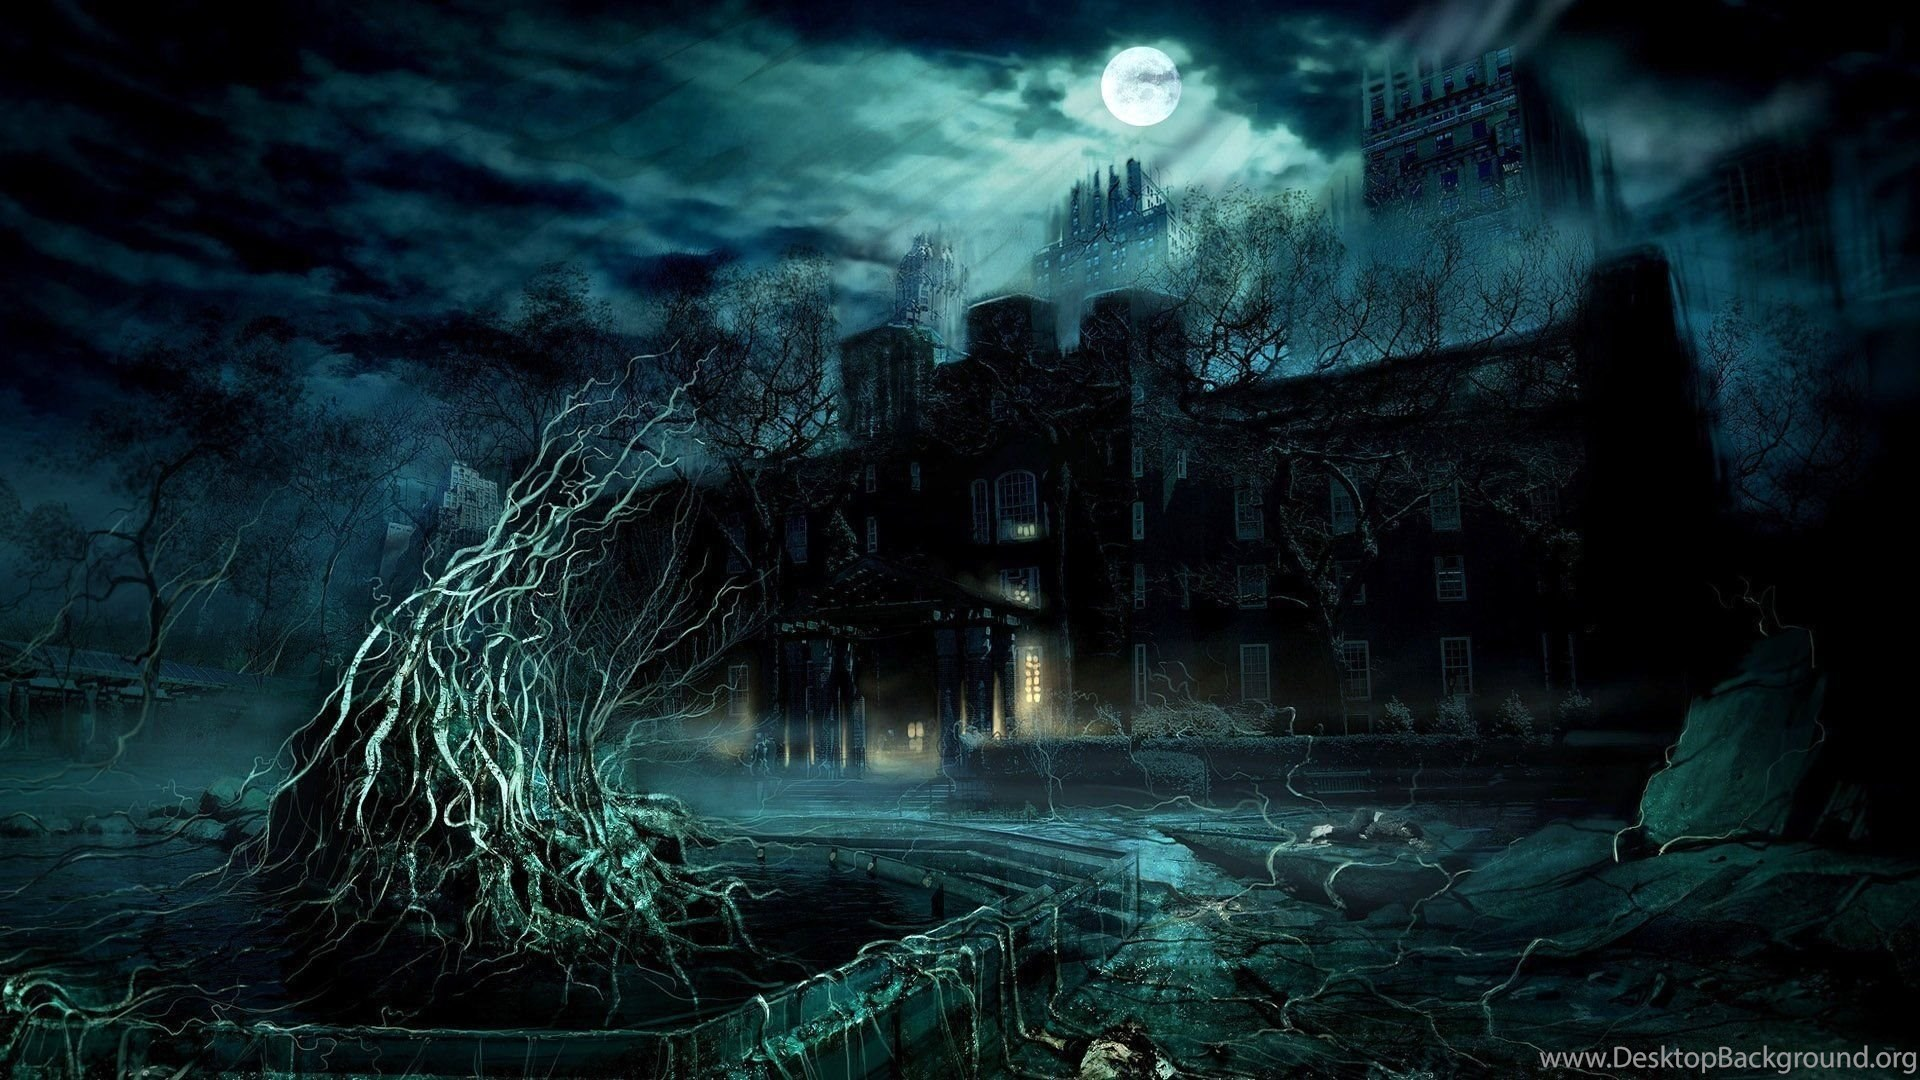 Fantasy Wallpapers Walldevil Best Free Hd Desktop And Mobile